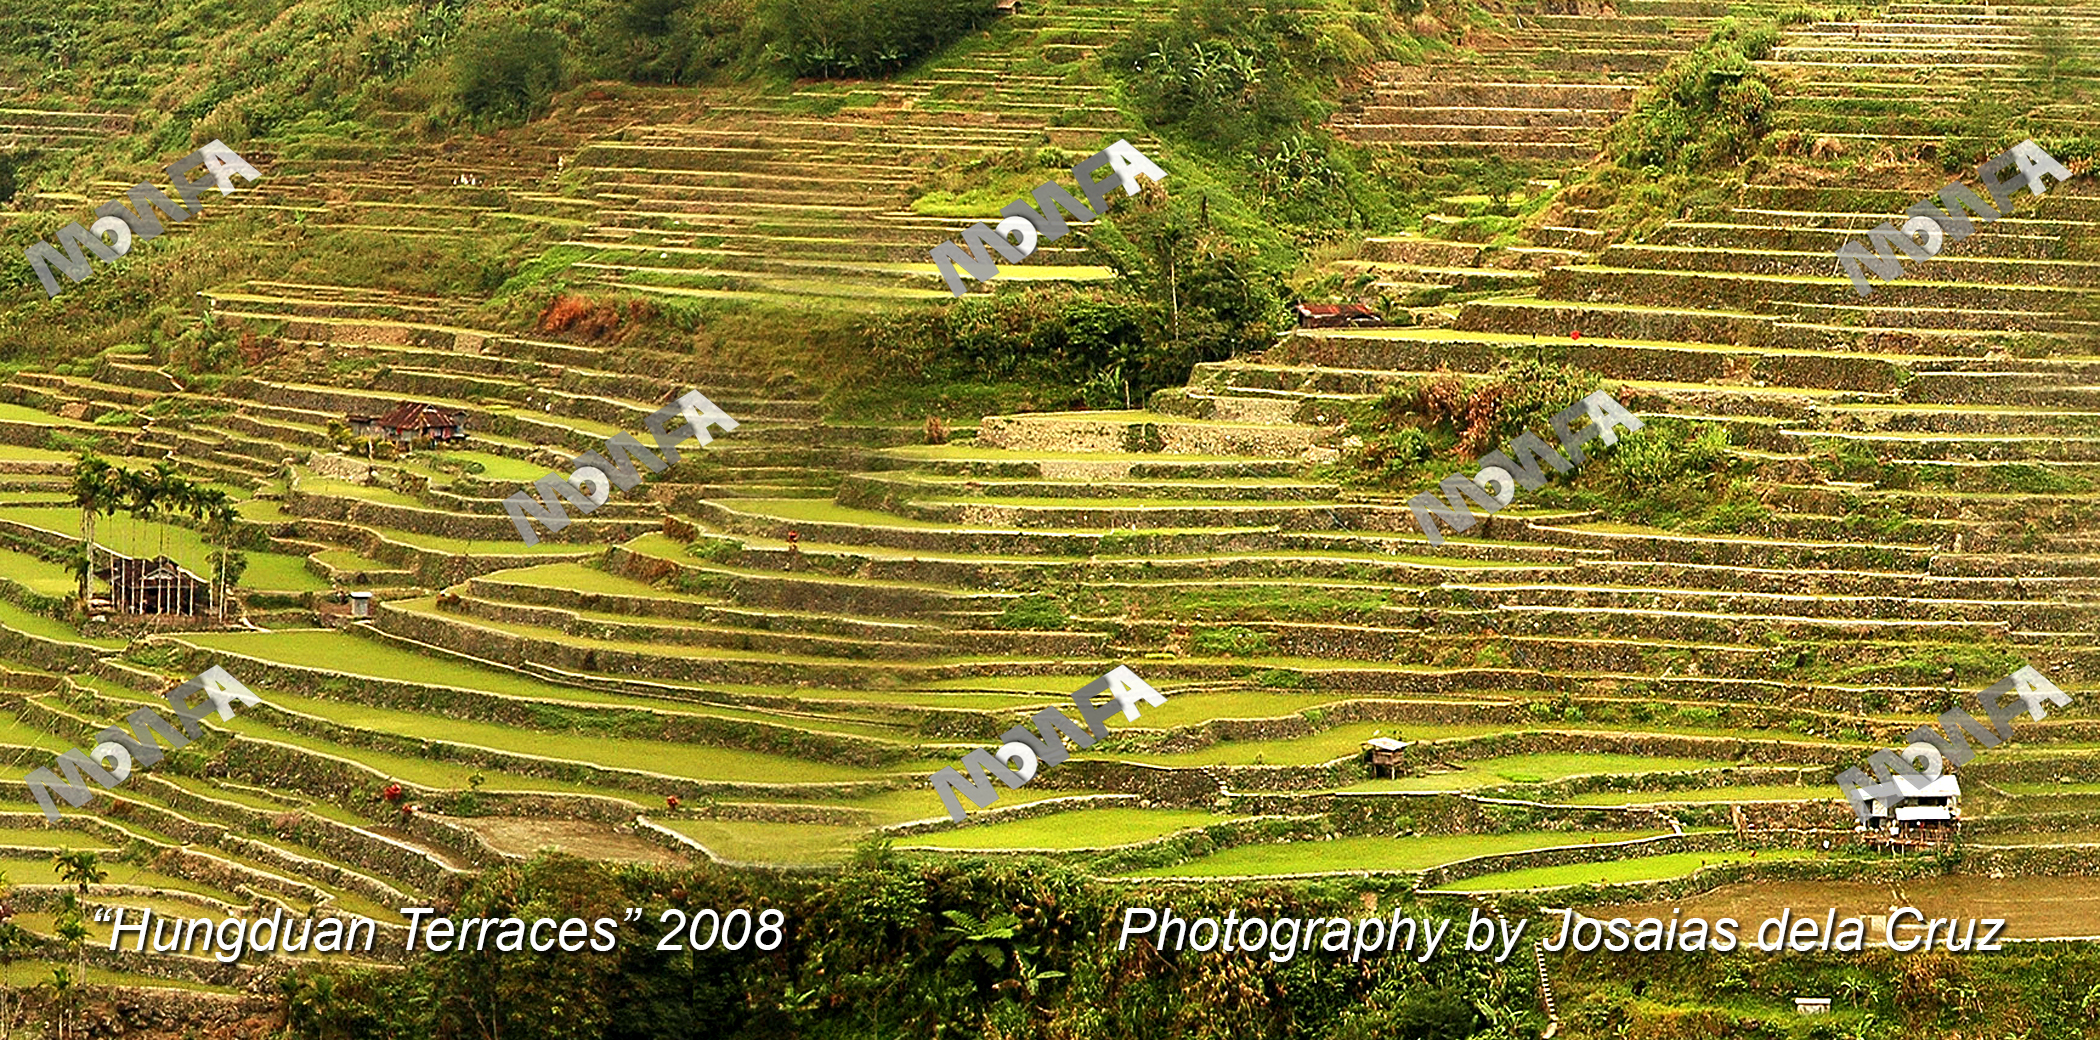 05 Hungduan Terraces wmc.jpg